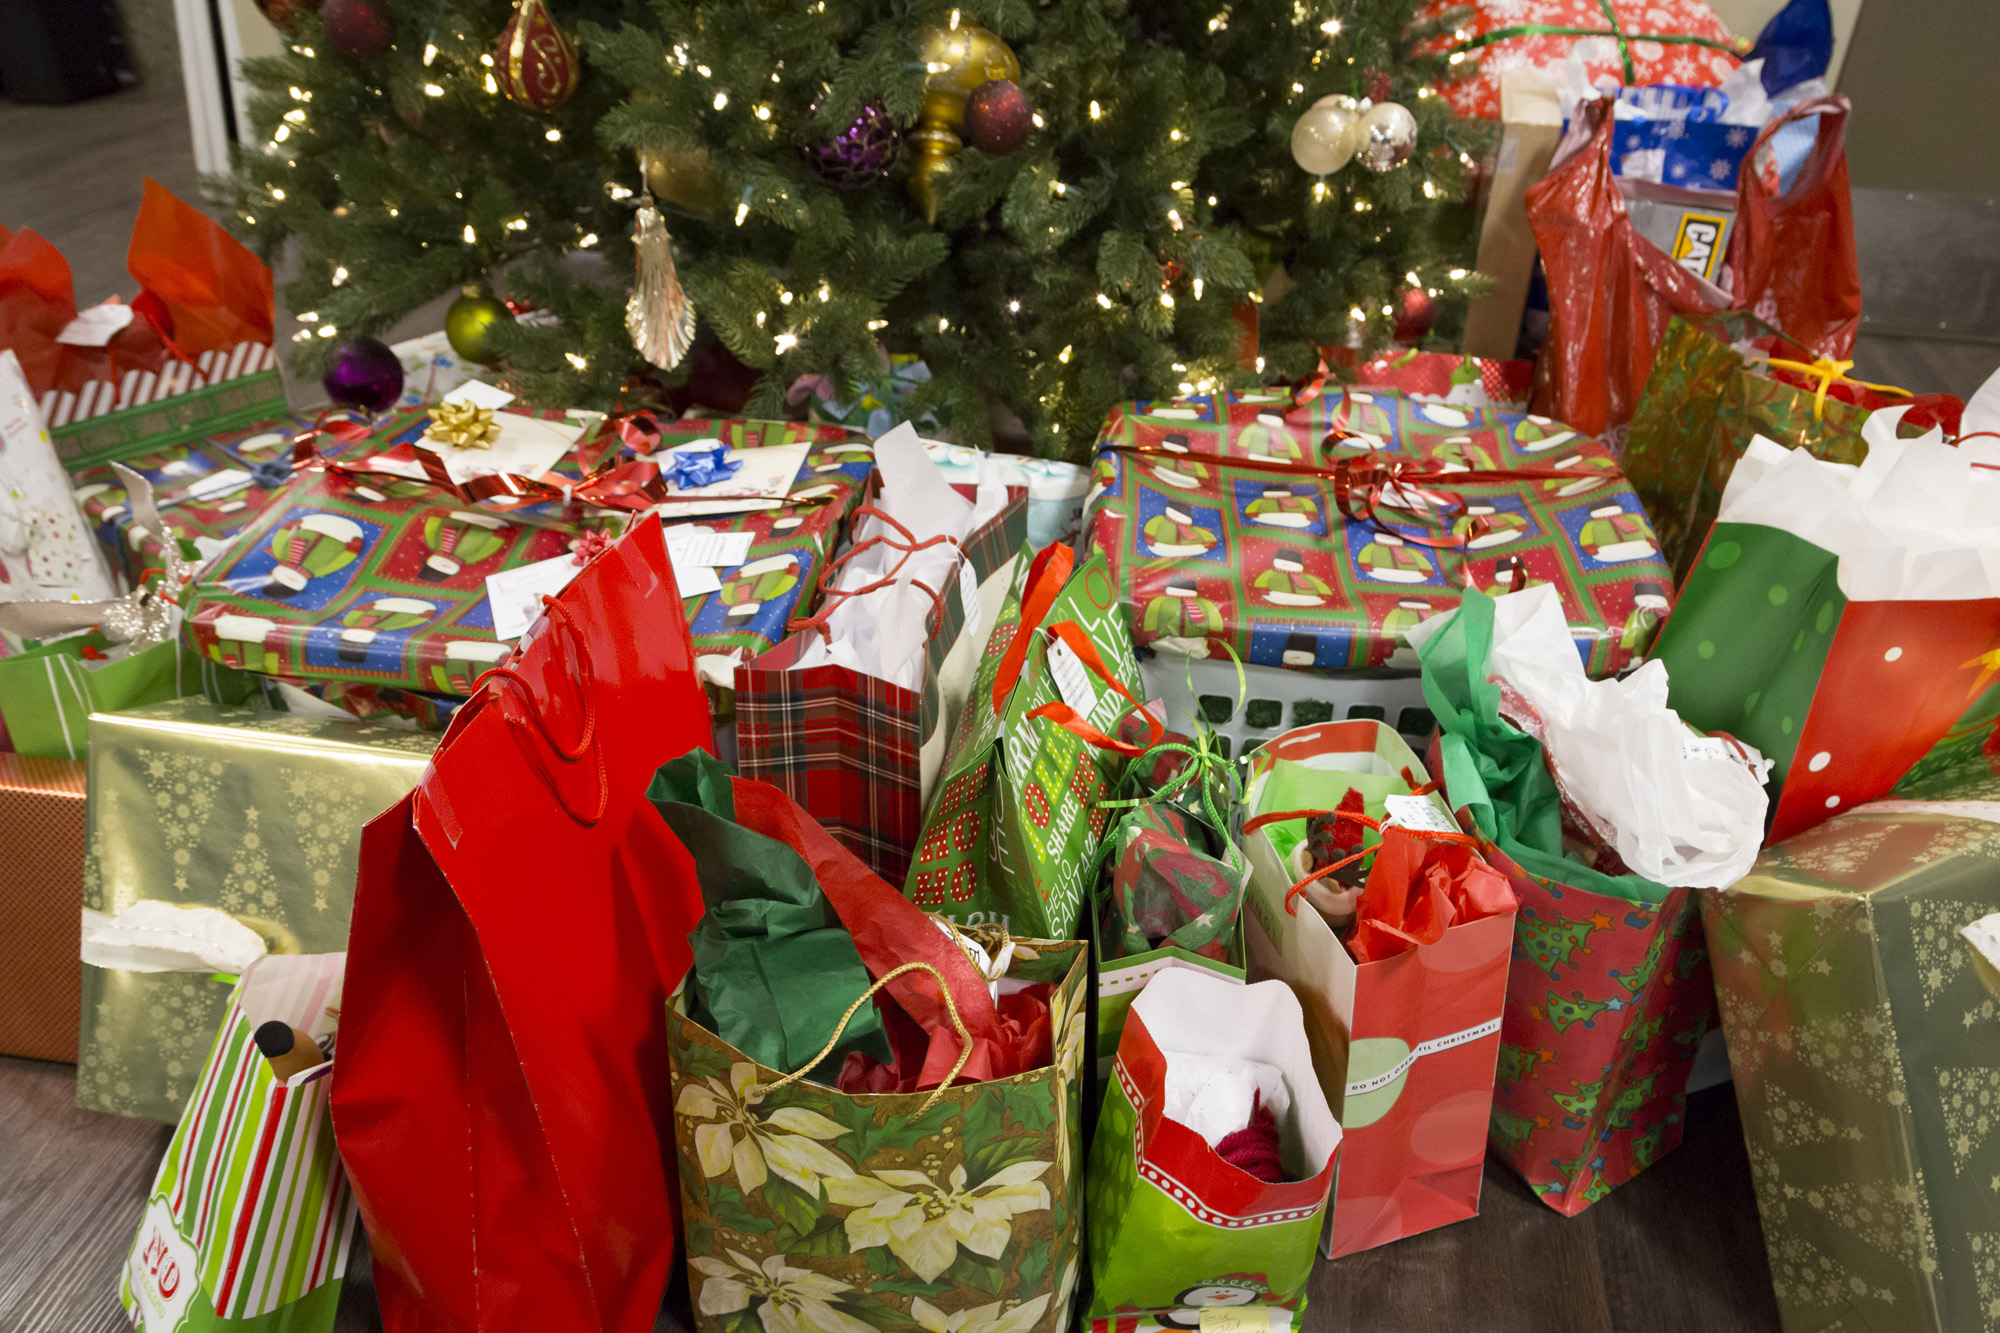 Adopt a Family' offers better Christmas for needy area families